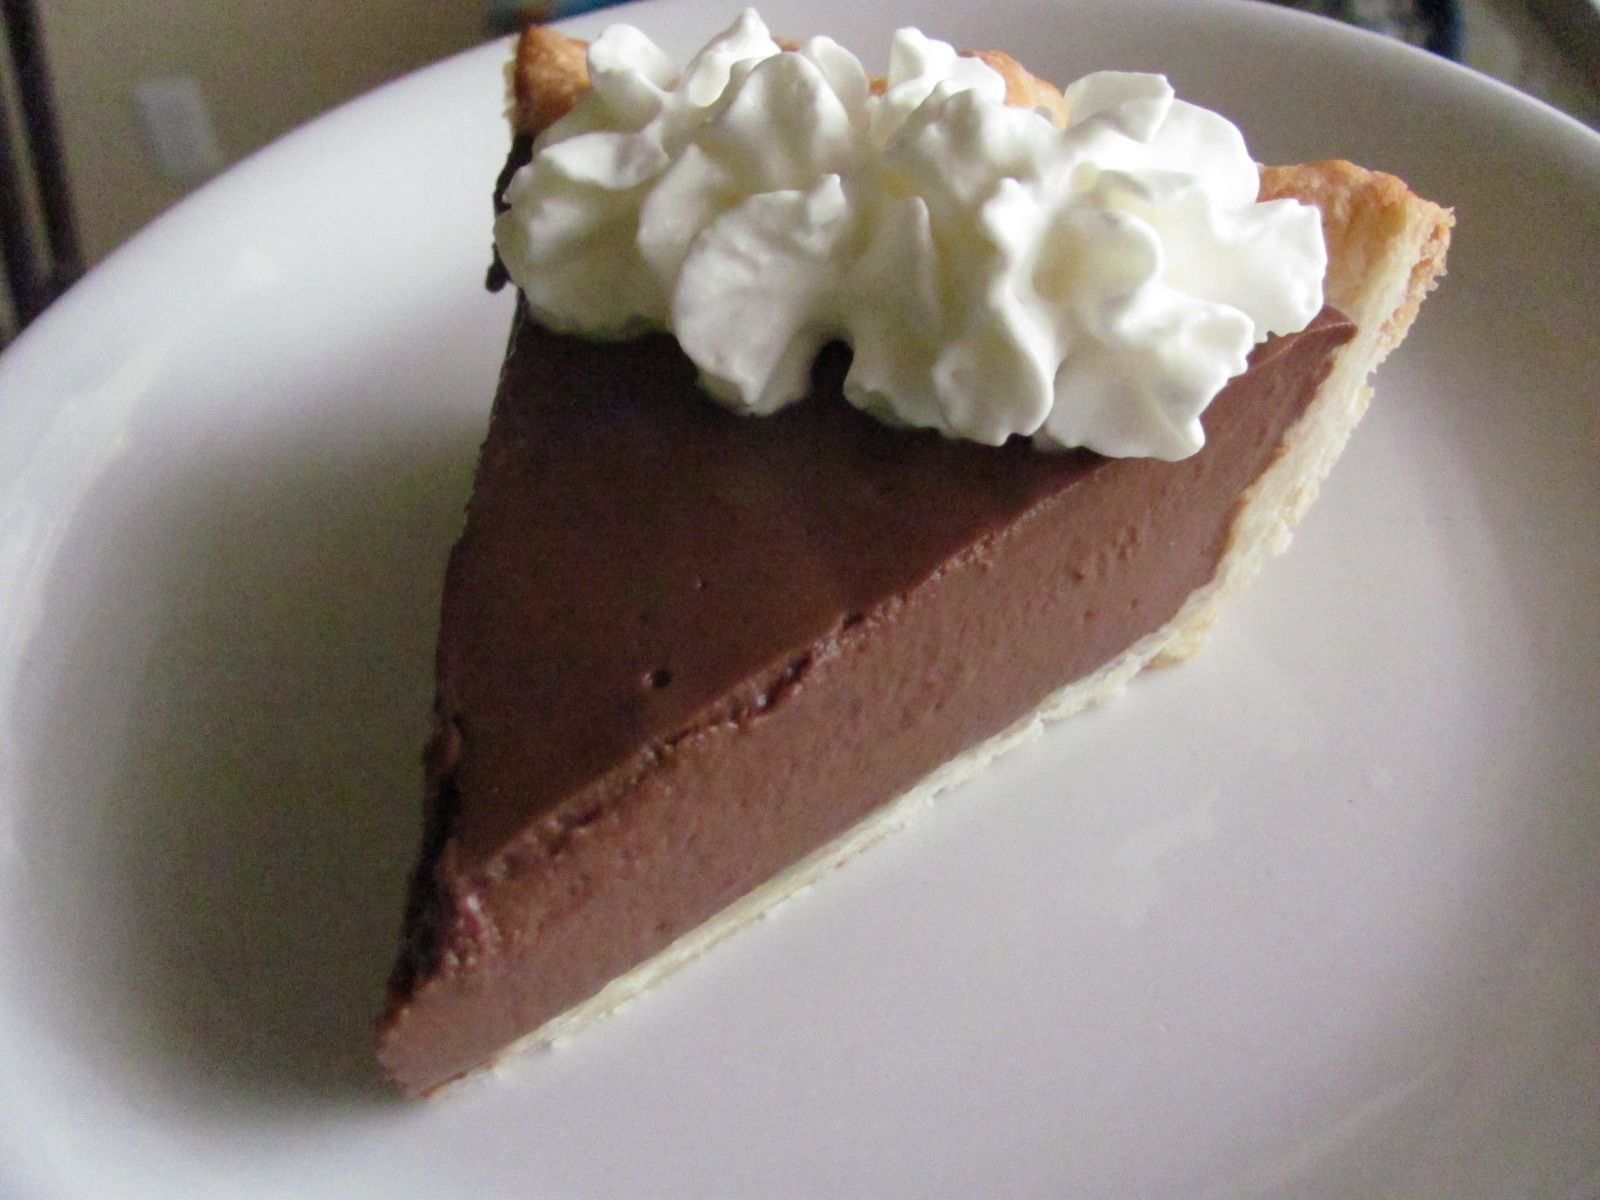 Chocolate Pudding Pie Chocolate pudding pie